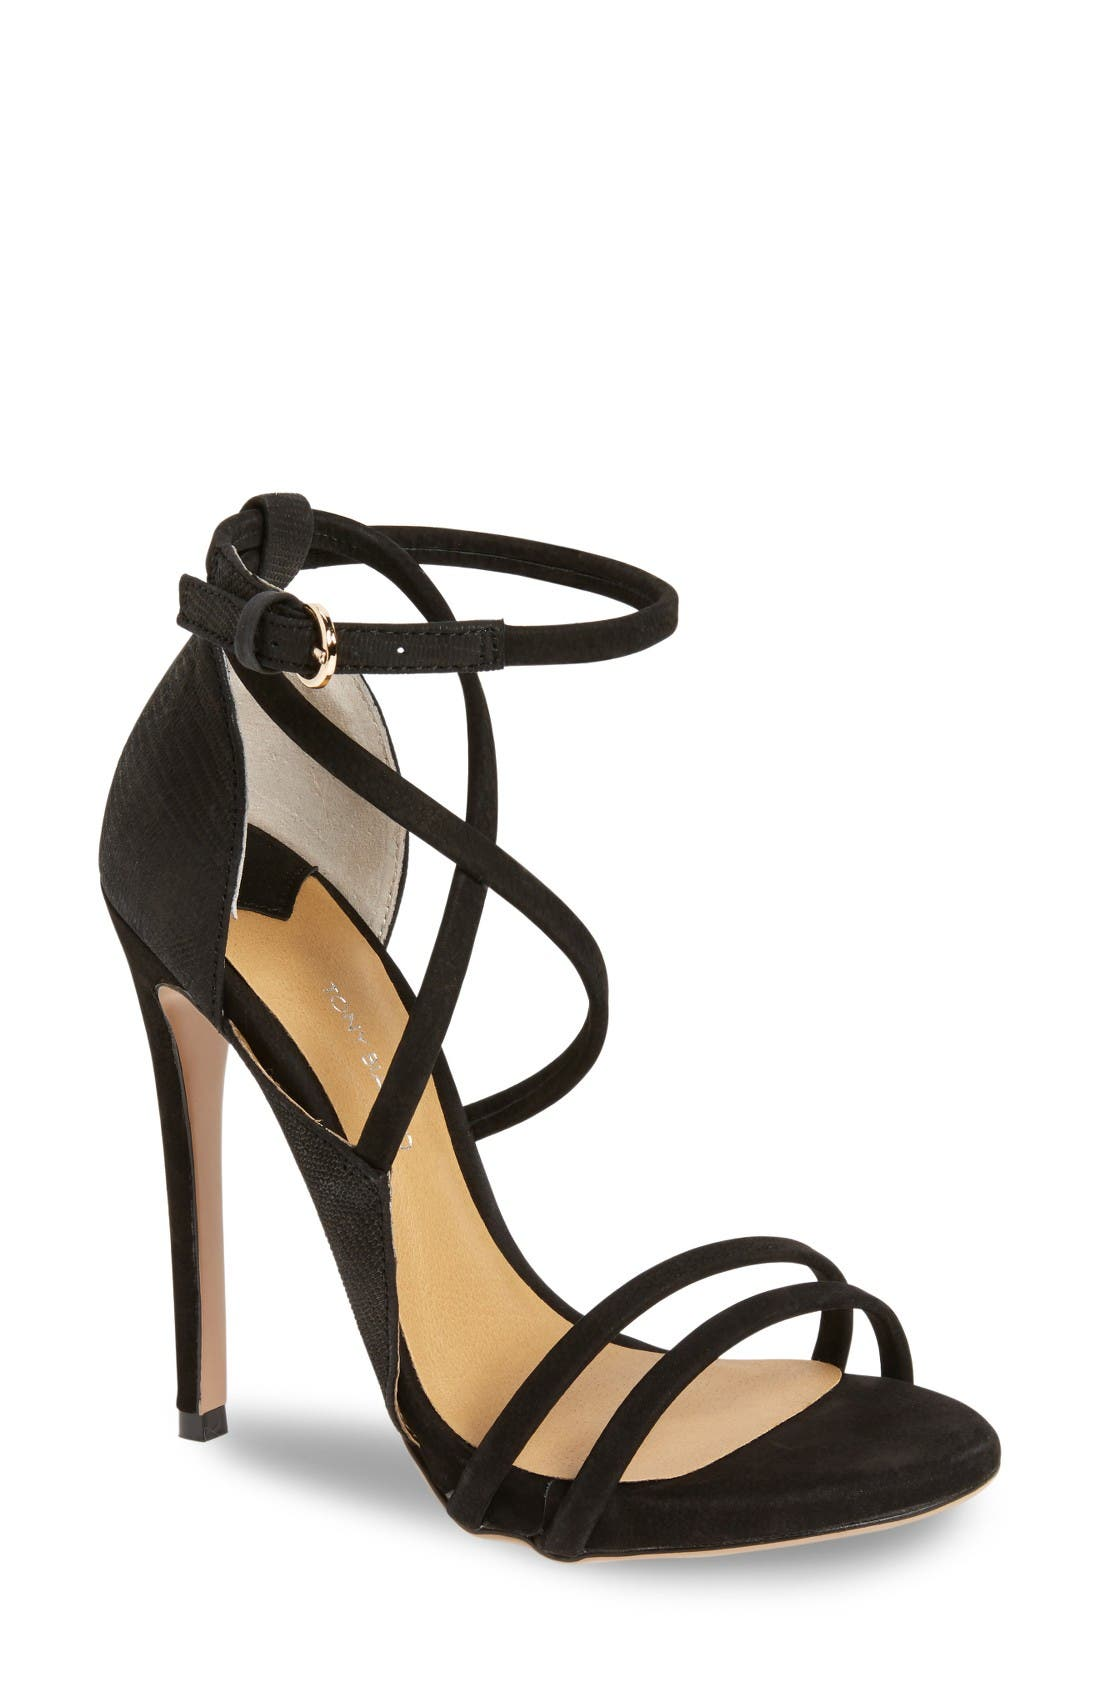 Alternate Image 1 Selected - Tony Bianco Alita Strappy Sandal (Women)